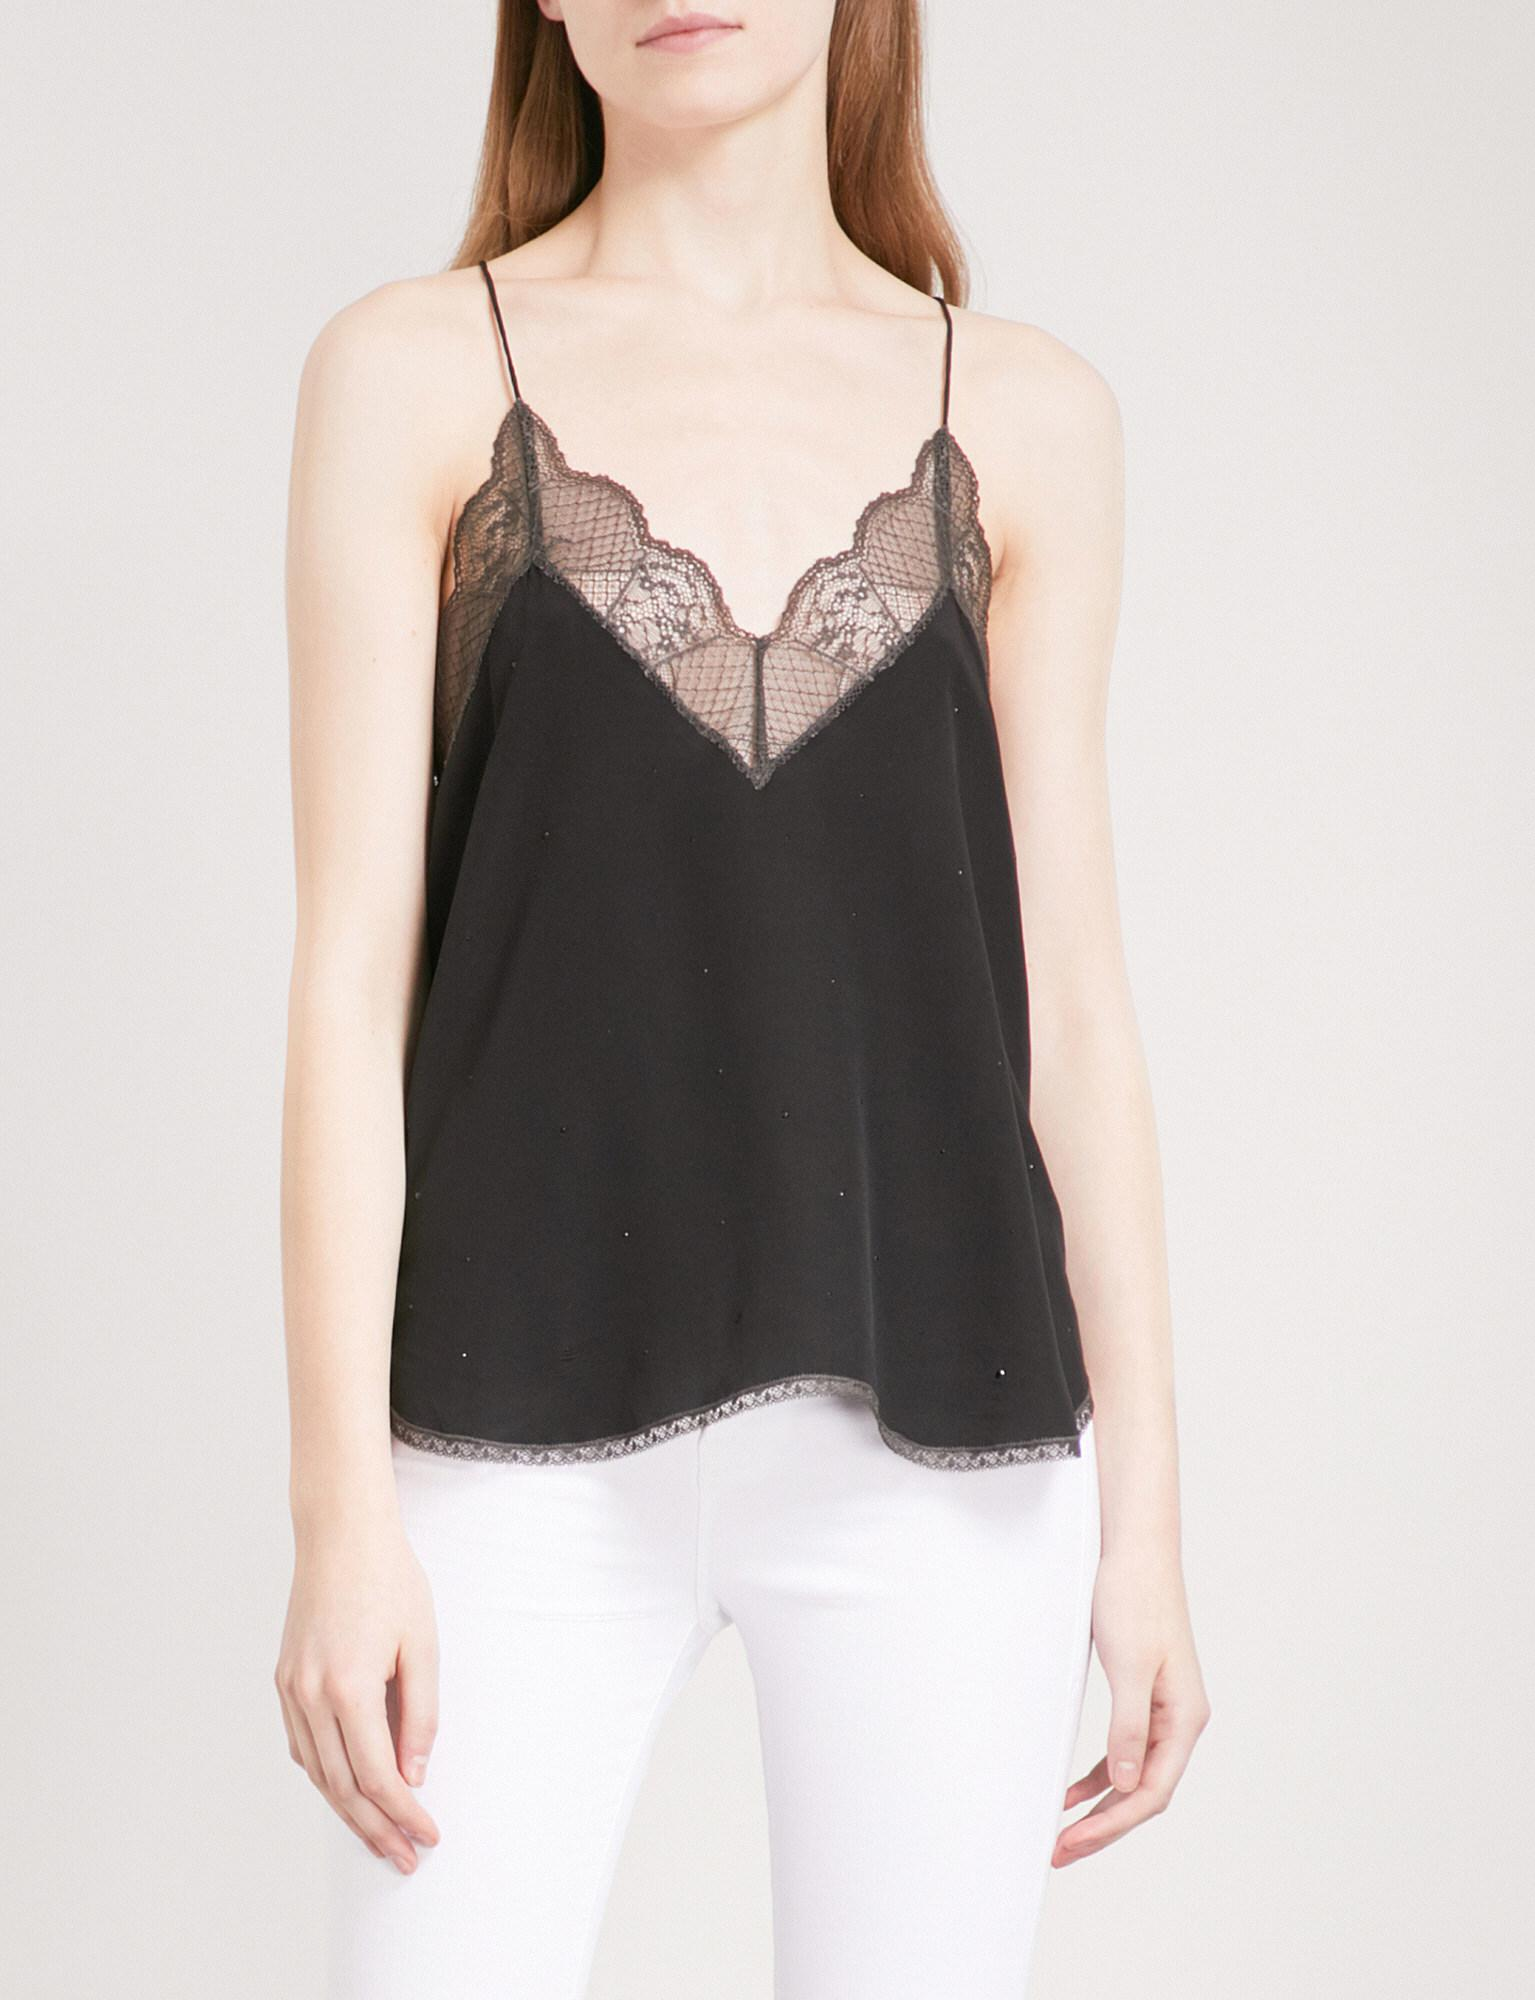 56d4ce20c49 Zadig & Voltaire Christy Strass Silk And Lace Top in Black - Lyst